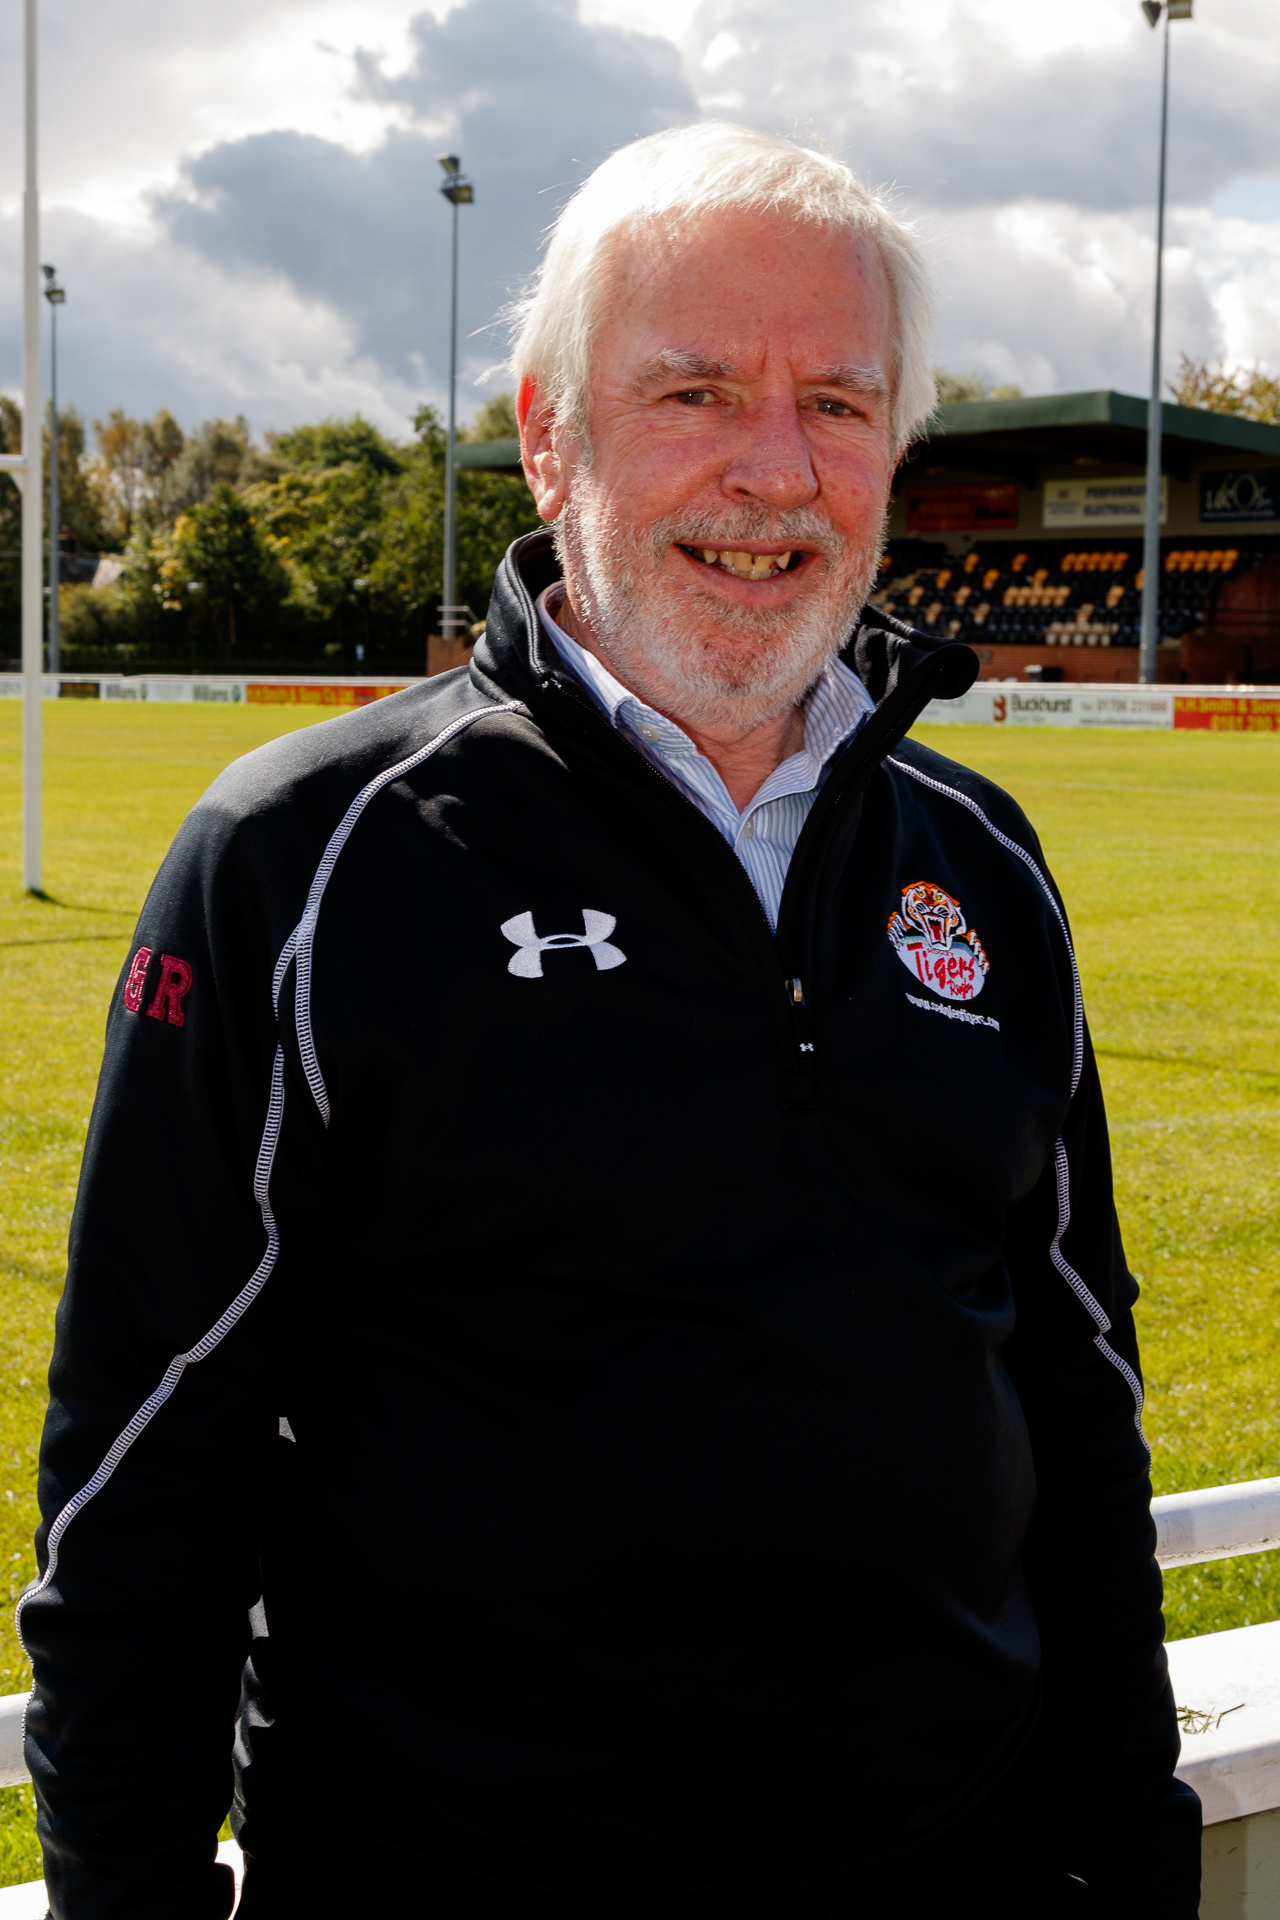 Sedgley Park general manager Geoff Roberts